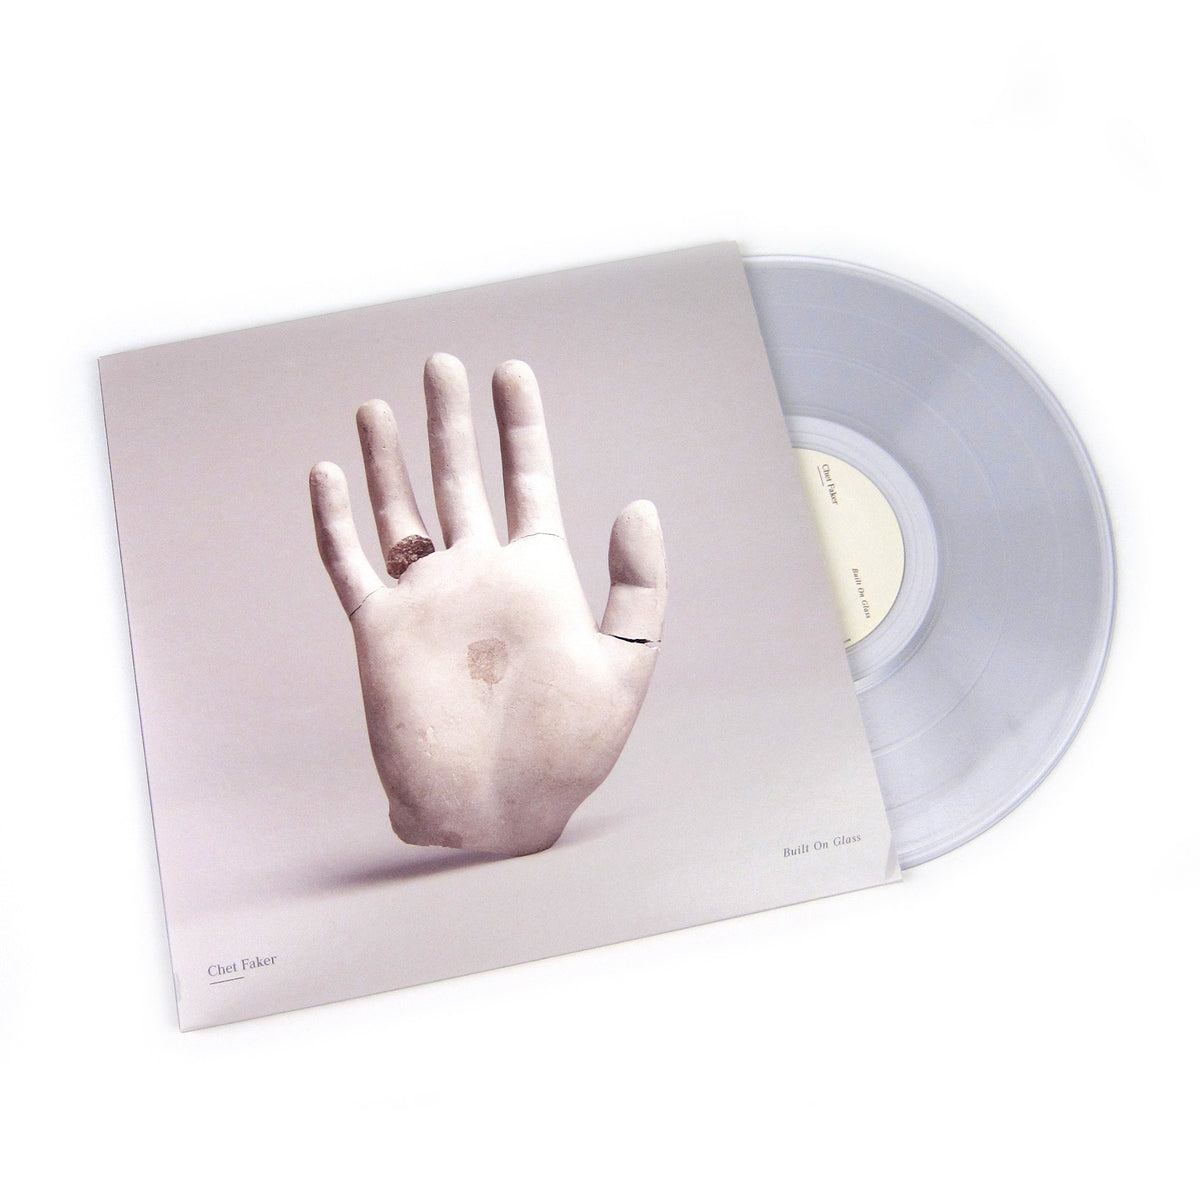 Chet Faker: Built On Glass (Colored Vinyl) Vinyl 2LP